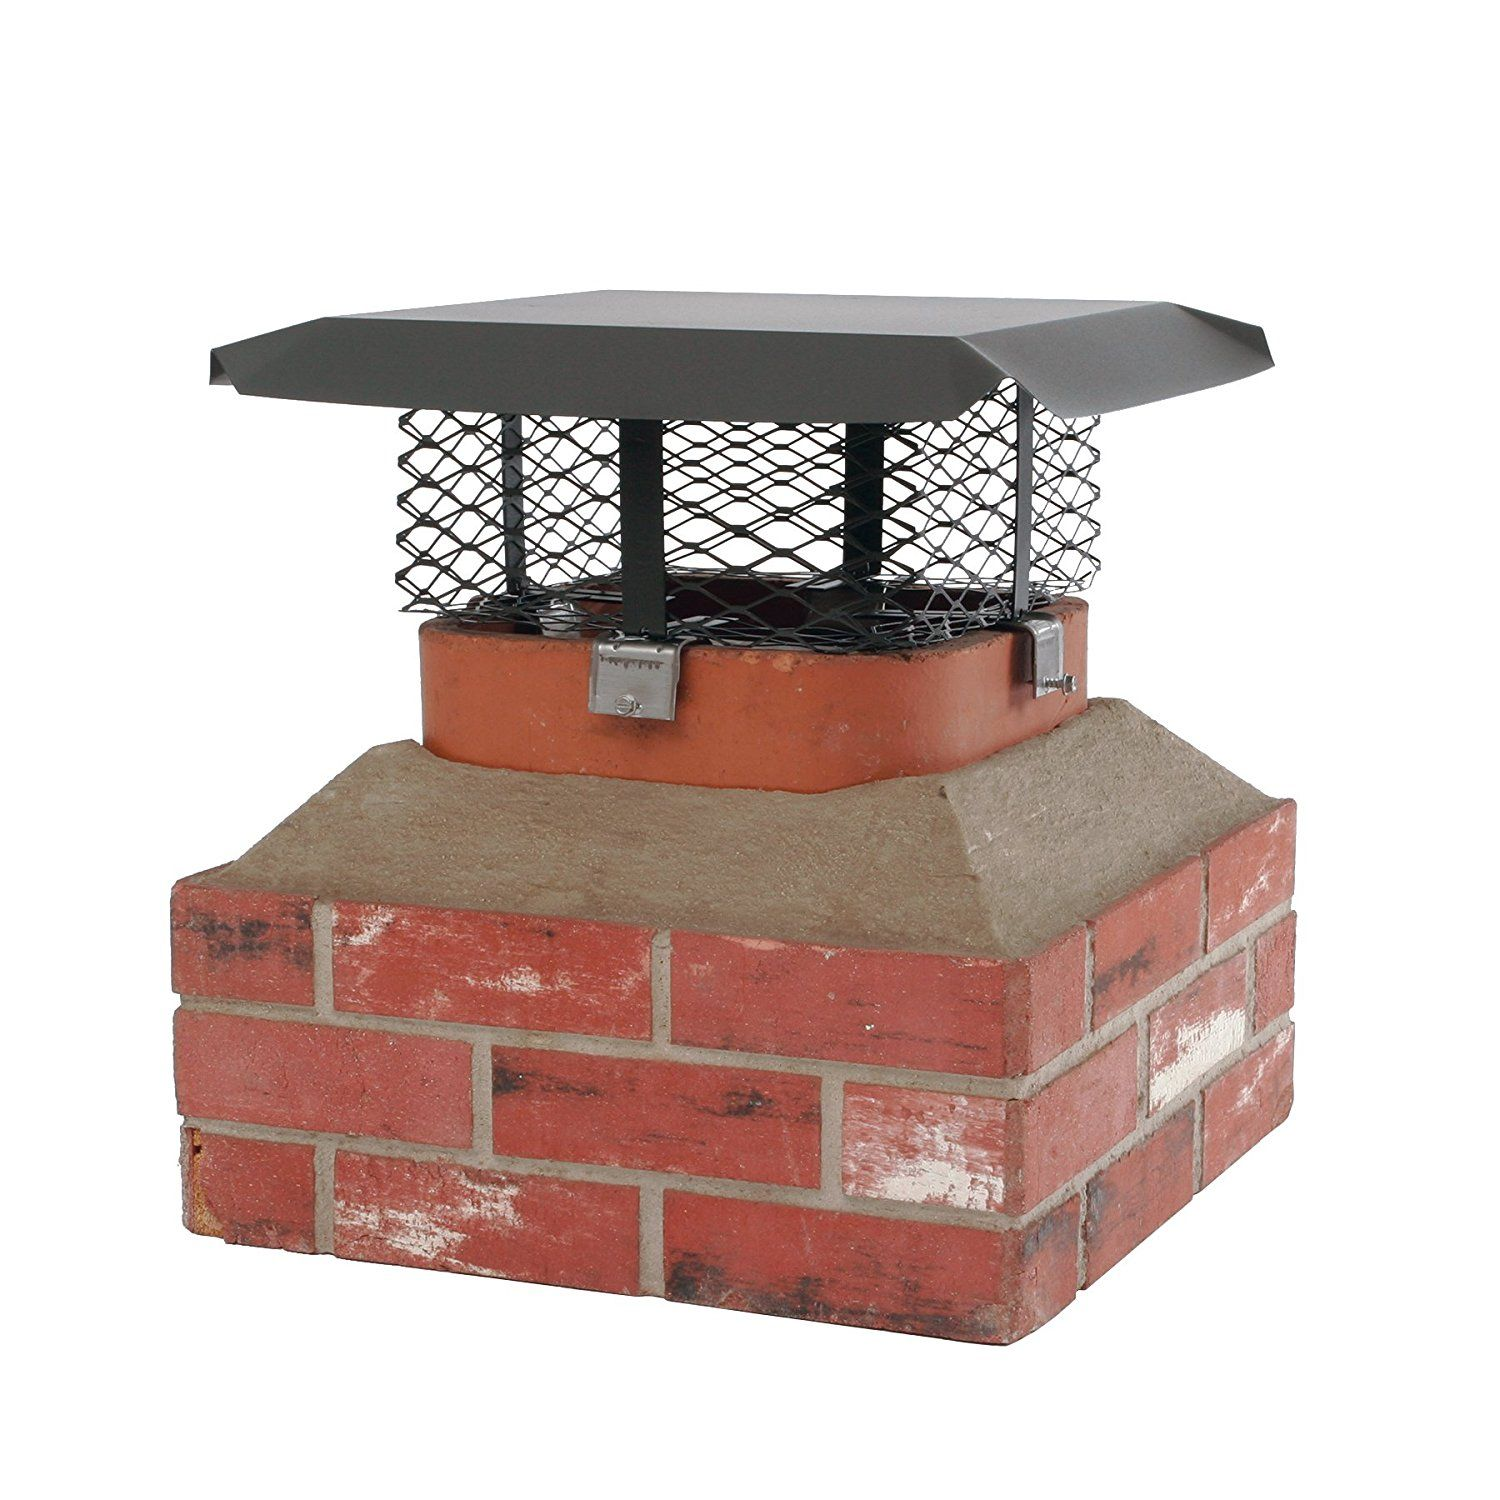 Shelter Scadj L C Adjustable Black Galvanized Steel Clamp On Single Flue Chimney Cap For Use In California A Chimney Cap Fireplace Accessories Galvanized Steel